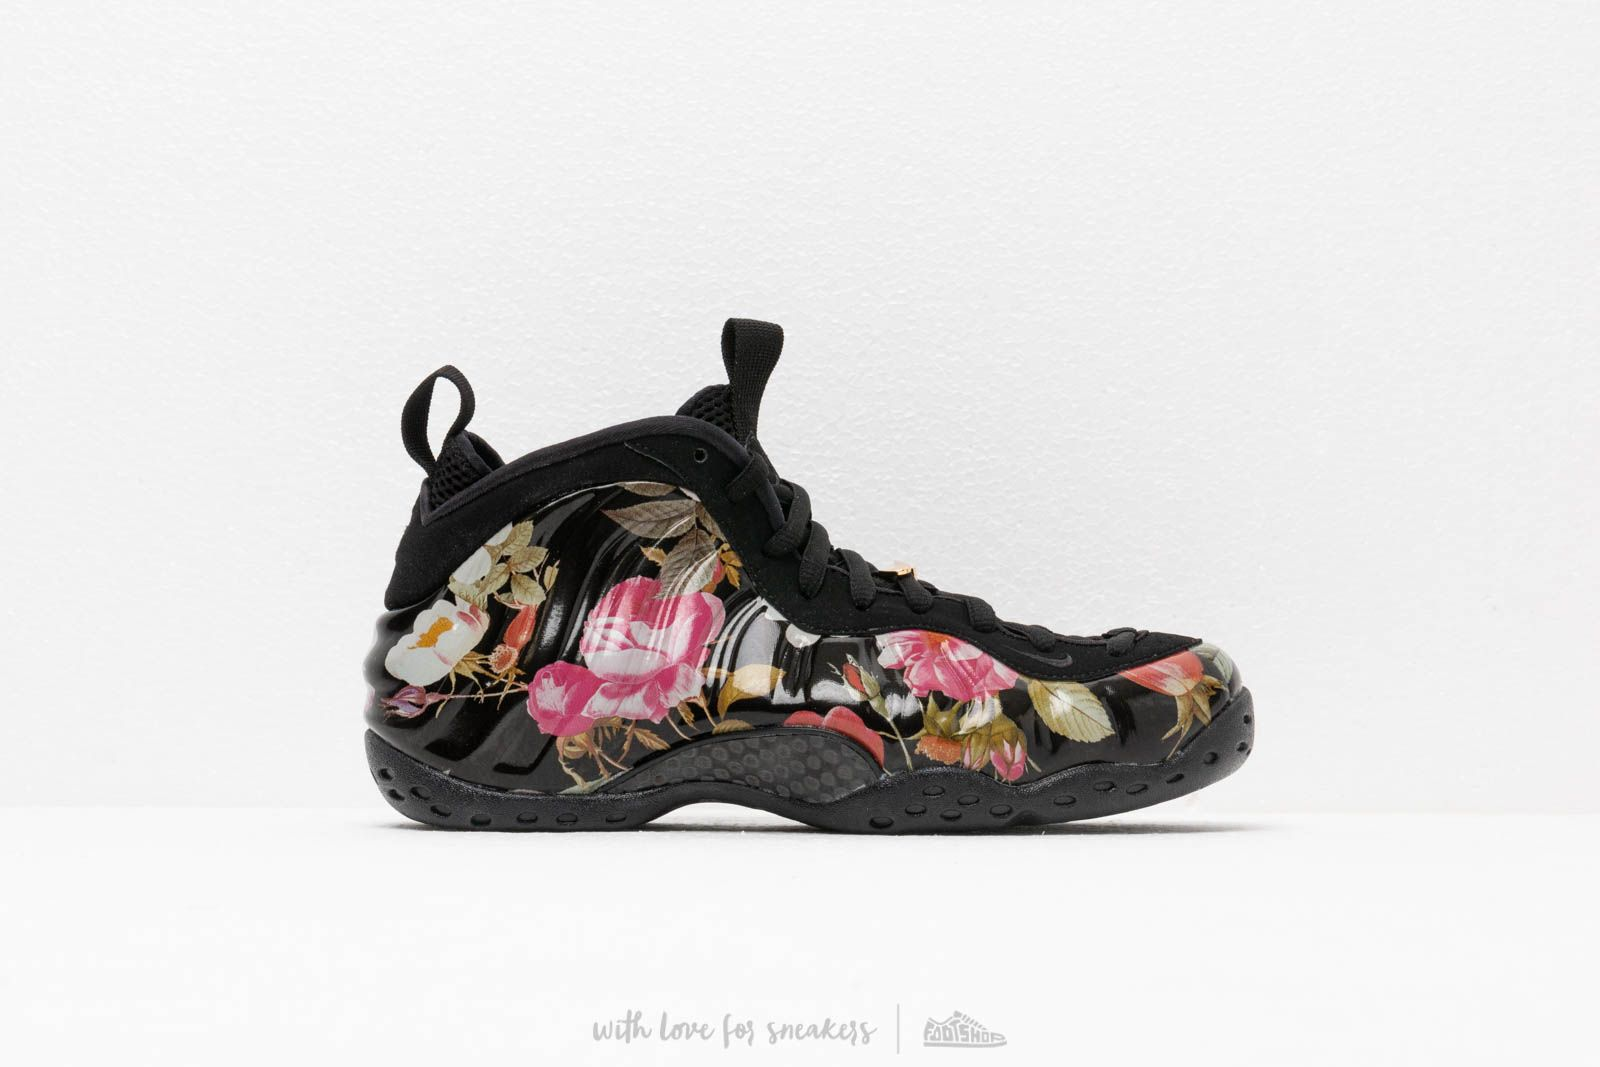 buy online 029d3 75781 Nike Air Foamposite One Floral Black  Black-White at a great price 205 €